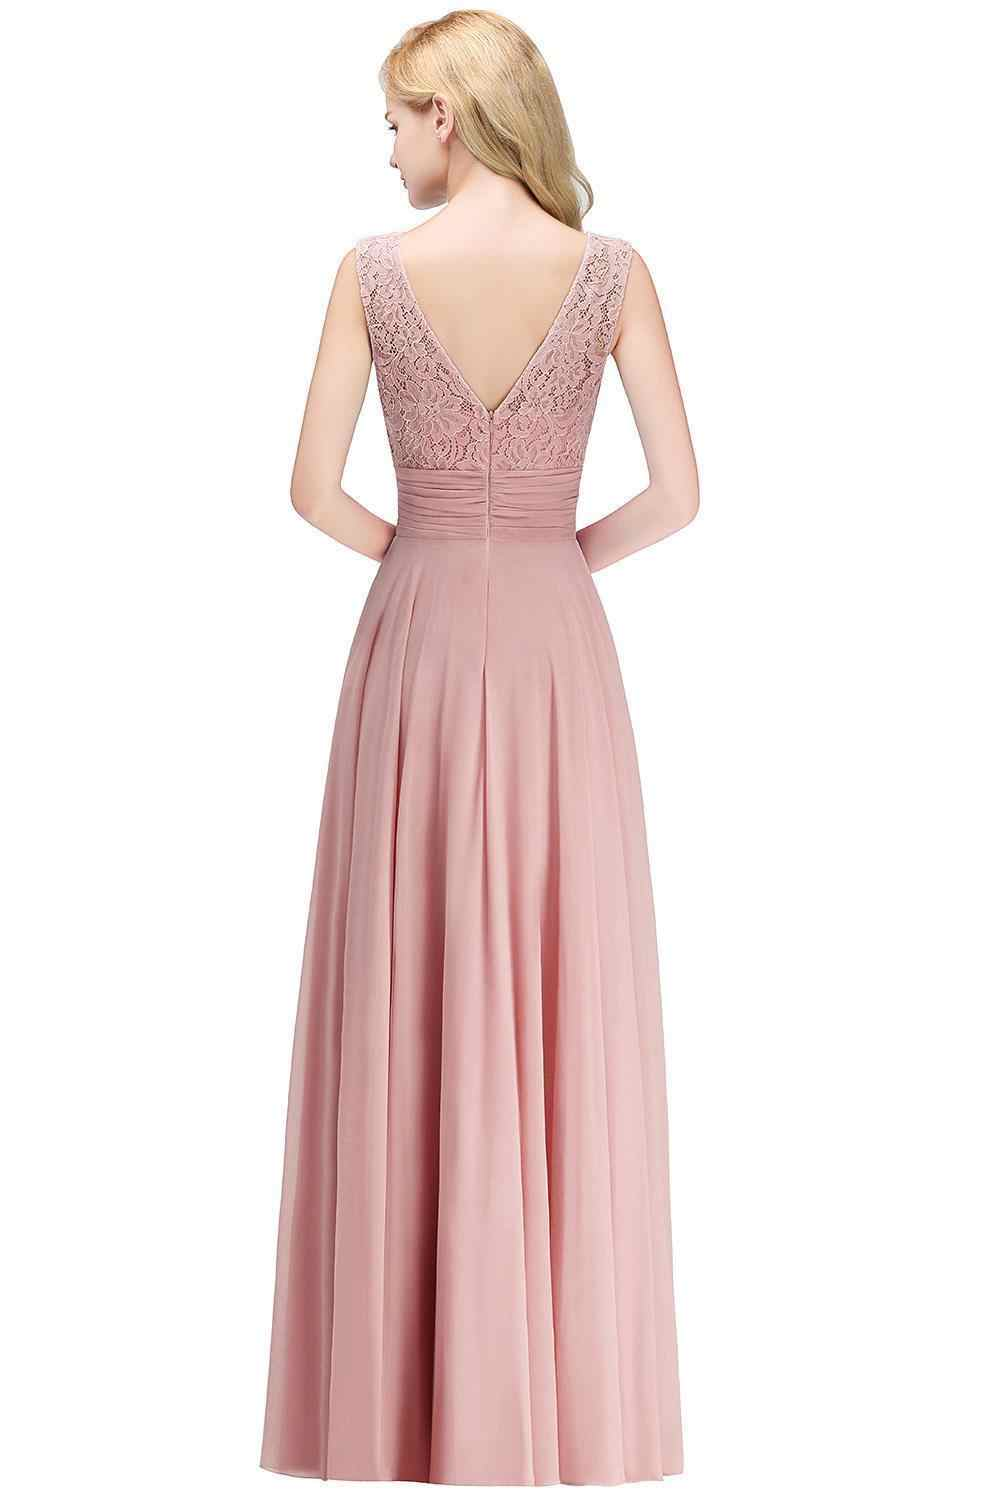 17814a9cf1bc5 Elegant Lace Long Bridesmaid Dresses 2019 Sleeveless Chiffon Ruched Wedding  Guest Maid Of Honor Party Dresses